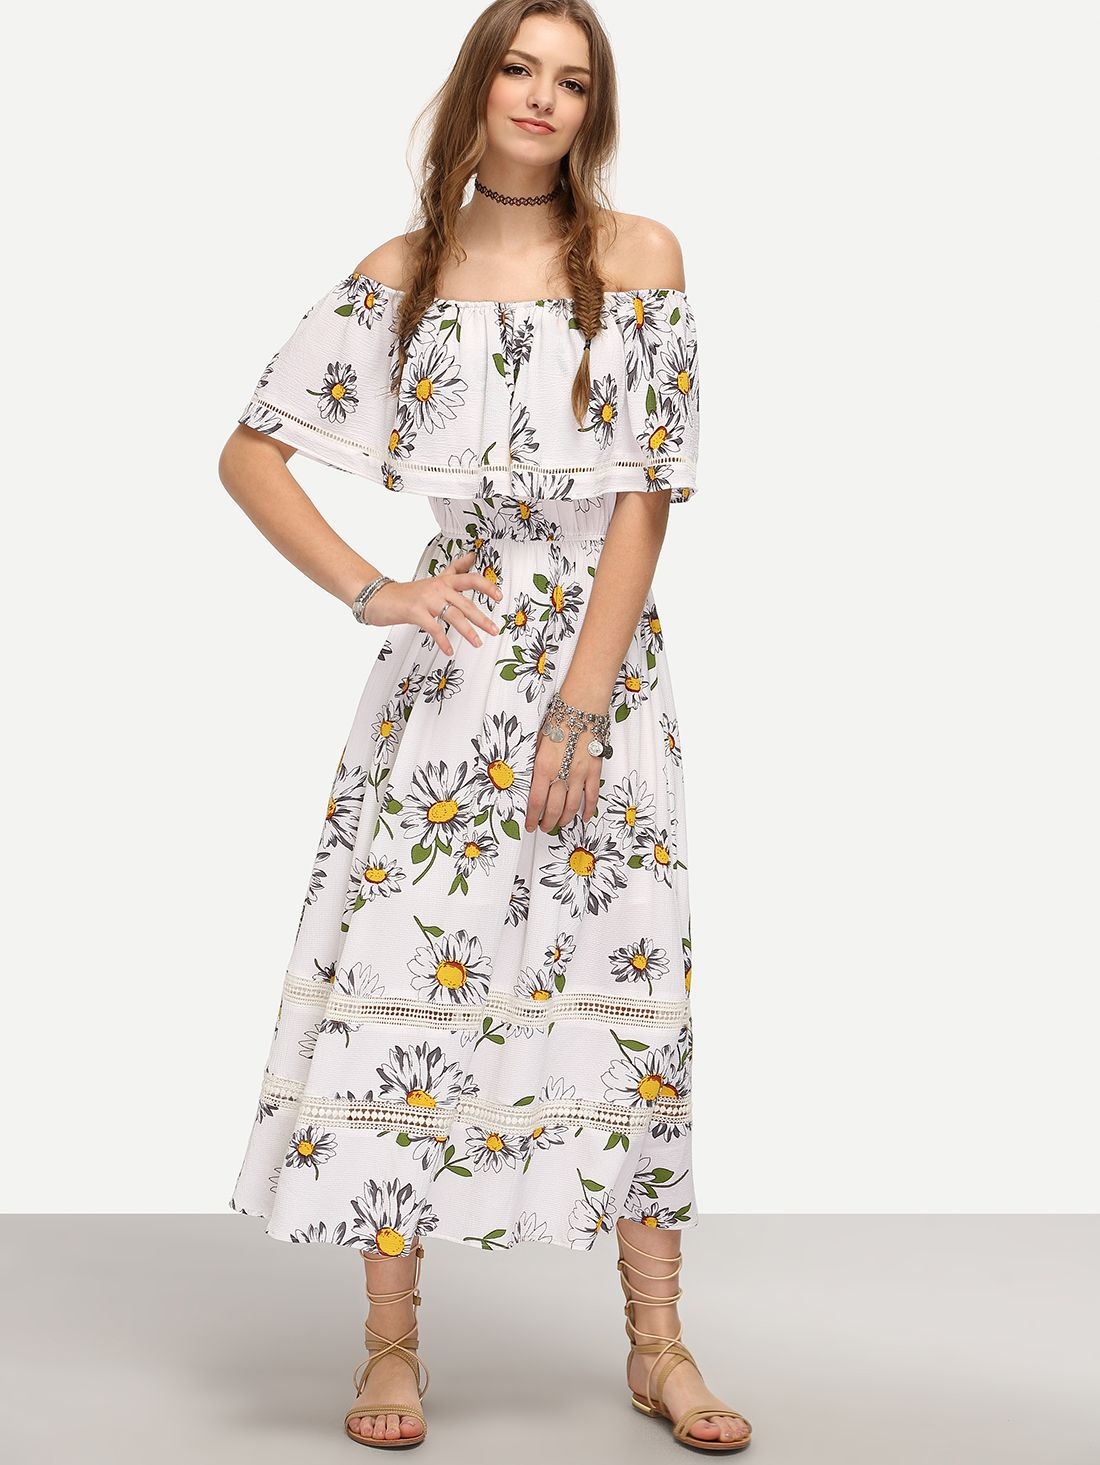 67a9b24426 Shop White Off The Shoulder Flower Print Maxi Dress online. SheIn ...